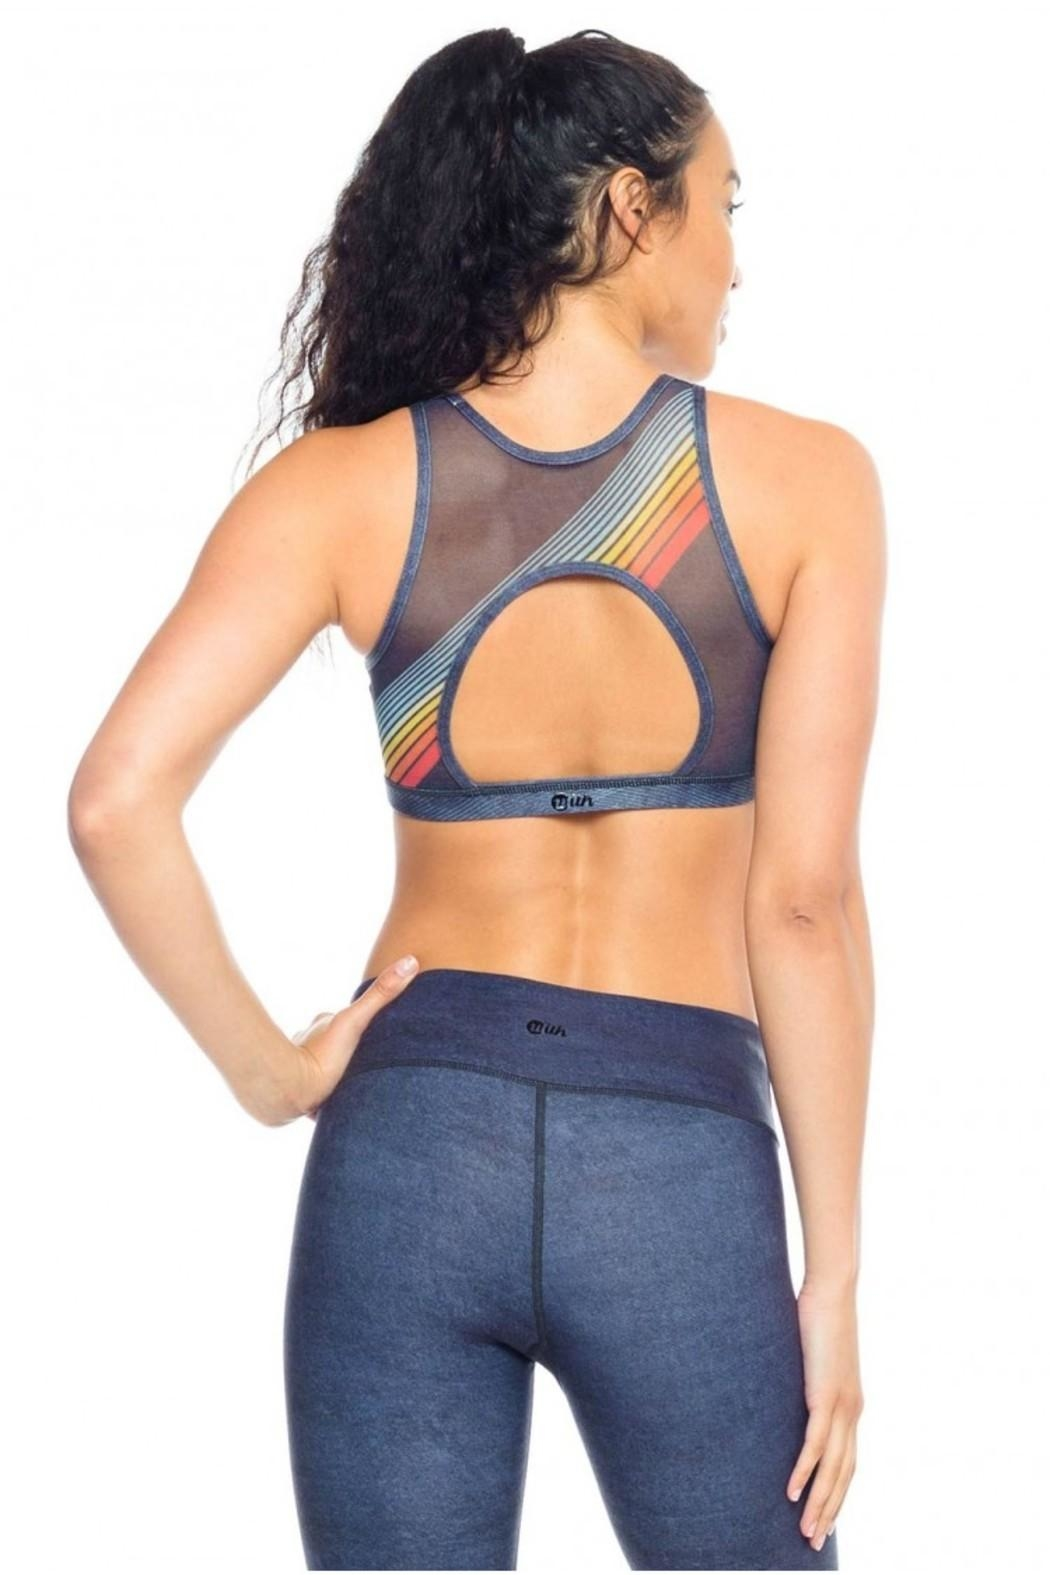 W.I.T.H.-Wear It To Heart High Neck Bra - Front Full Image